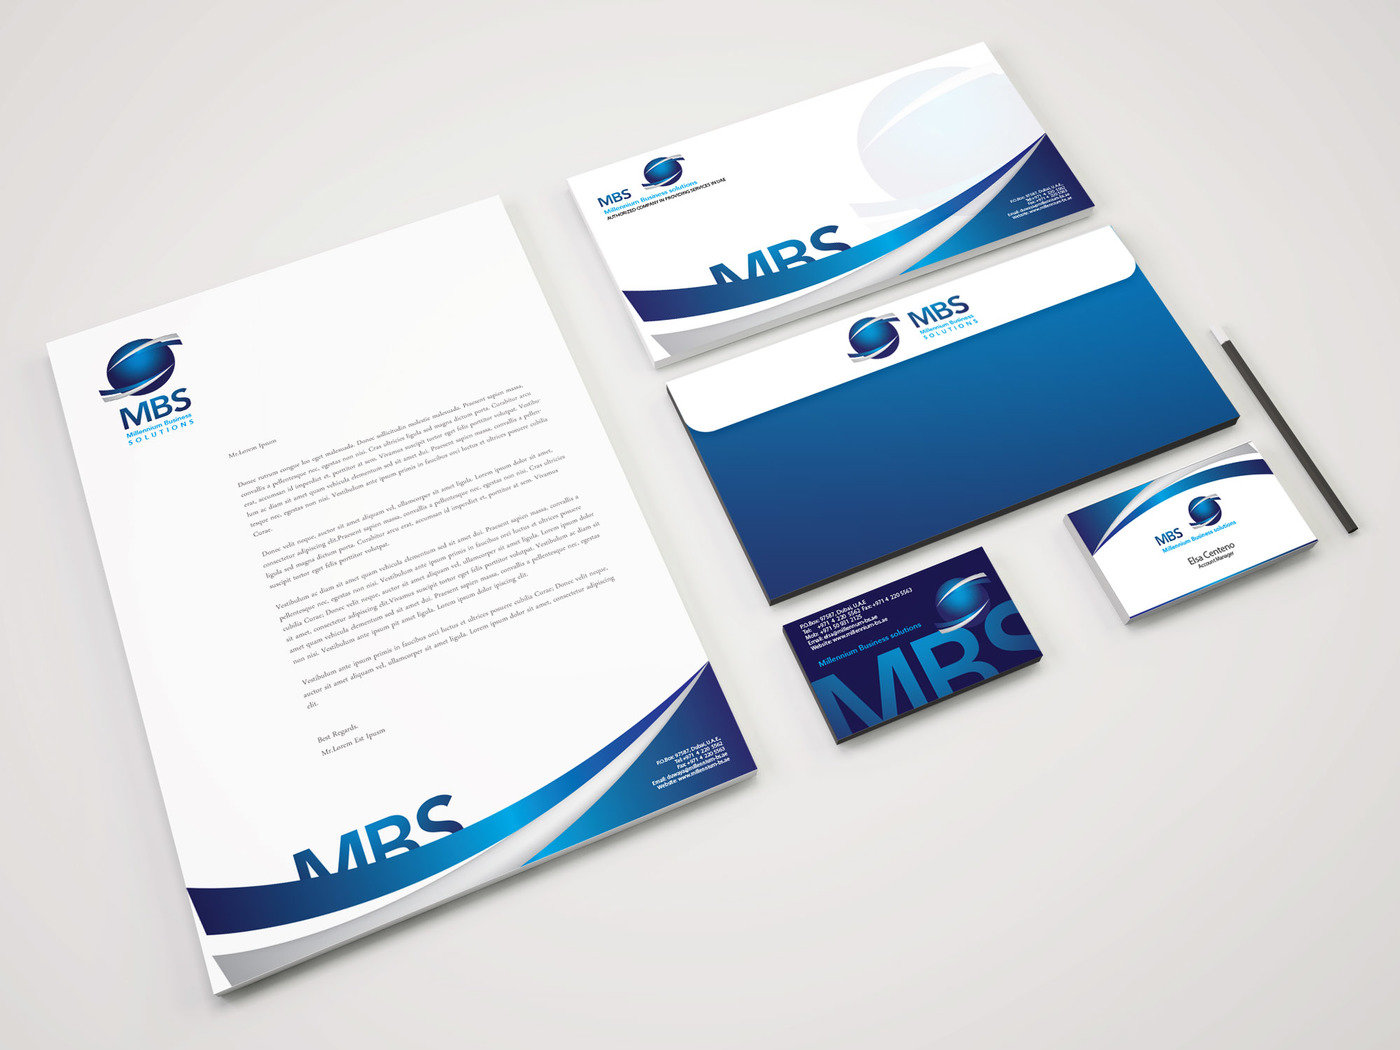 MBS Solutions (Logo, Business Card, Vehicle Wraps, NCR Books ...